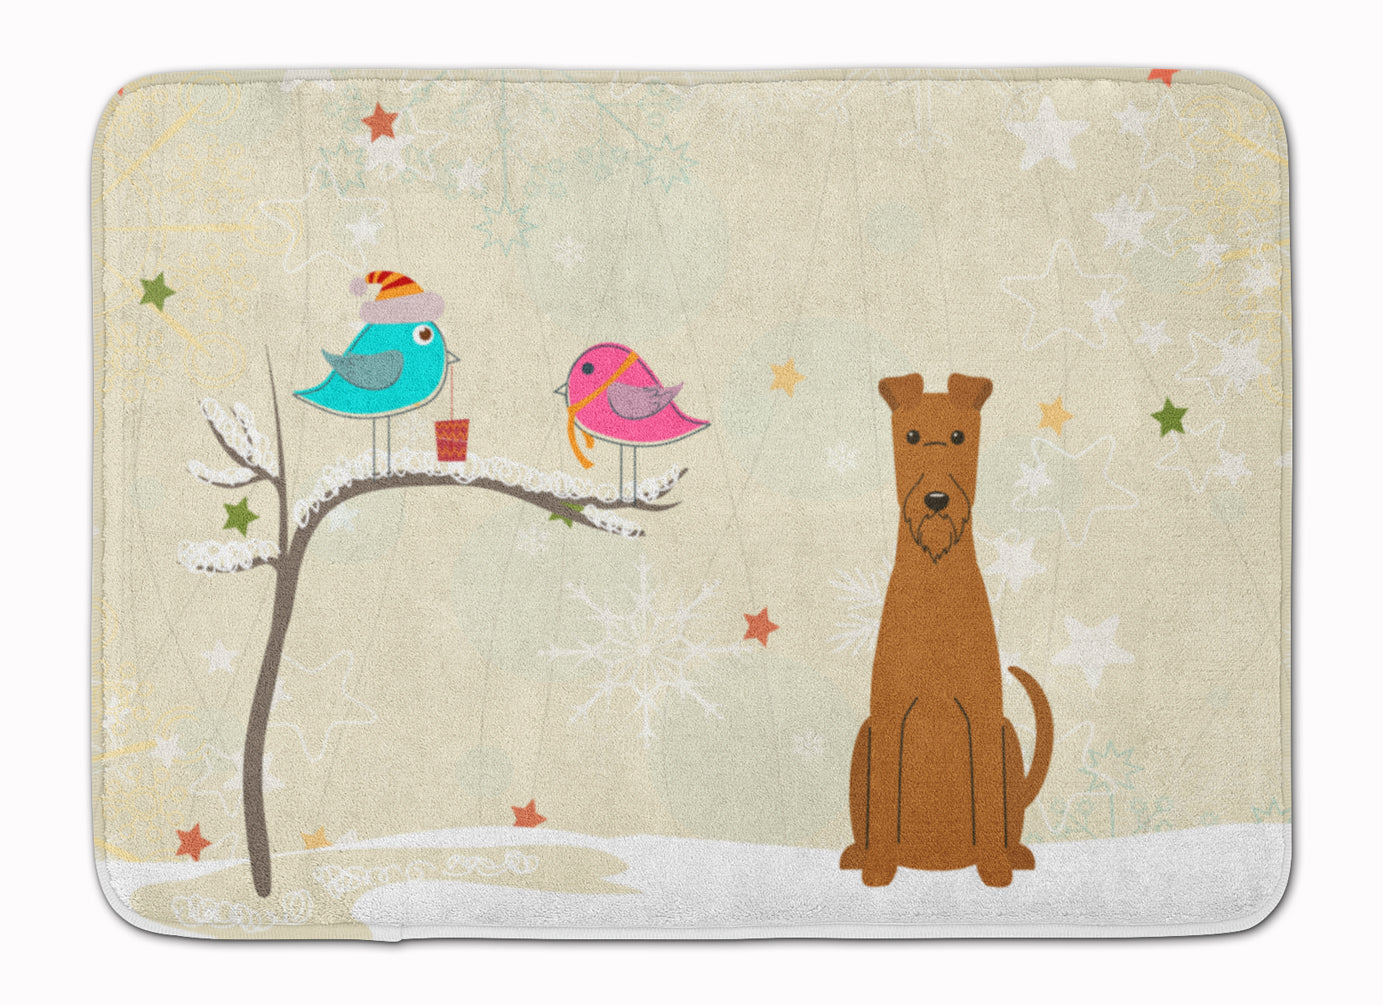 Christmas Presents between Friends Irish Terrier Machine Washable Memory Foam Mat BB2534RUG by Caroline's Treasures